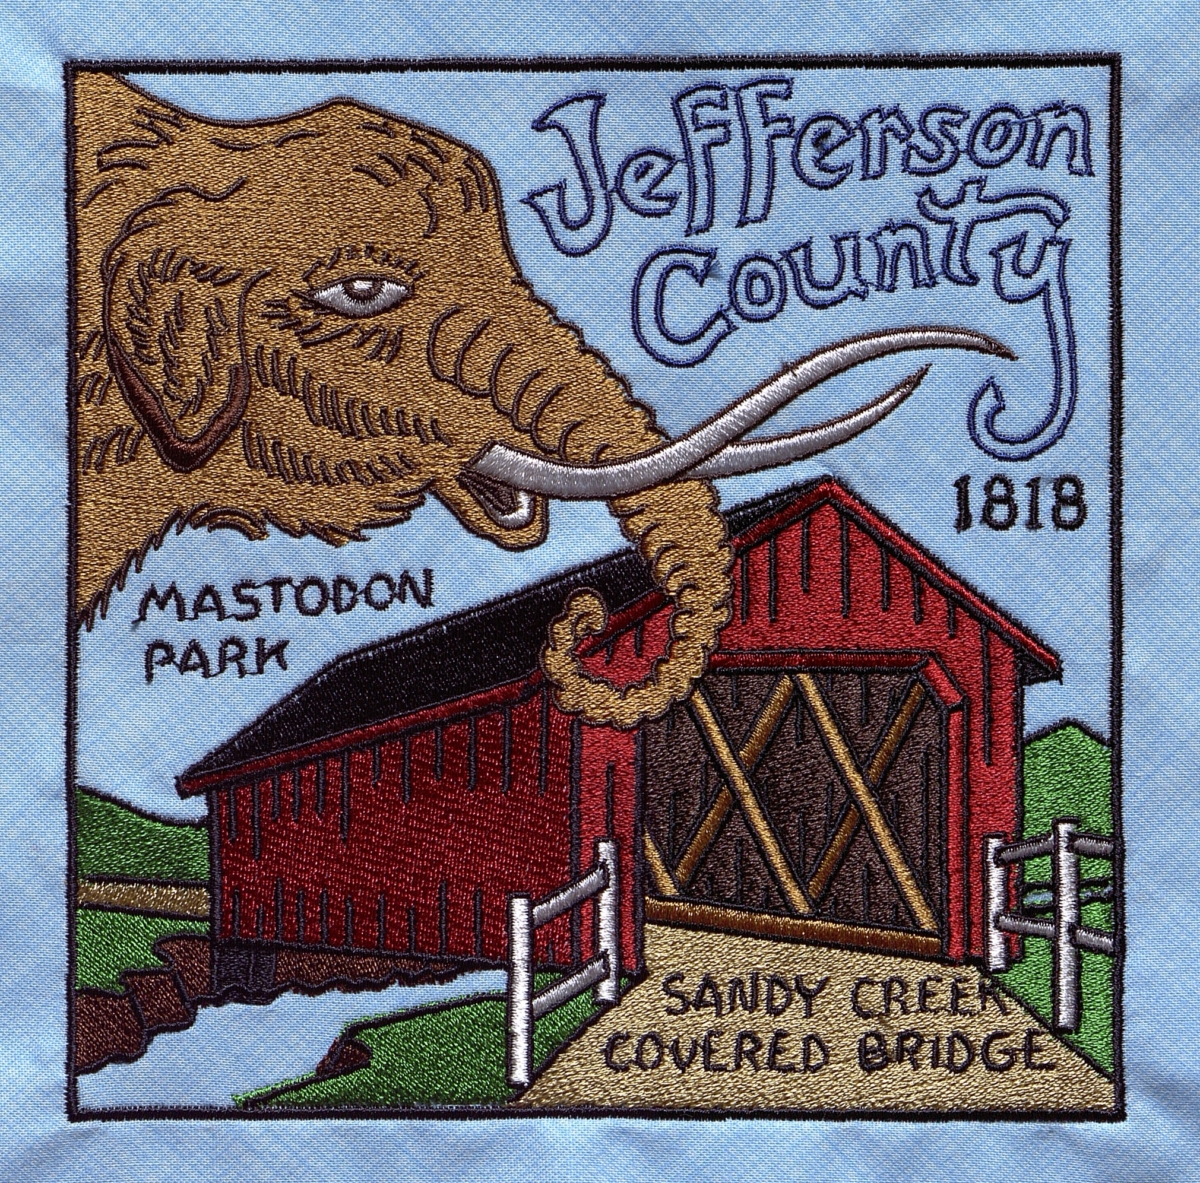 Jefferson County Heritage - Designed by Allen Flamm, made and embroidered by Patti Allen and associate.